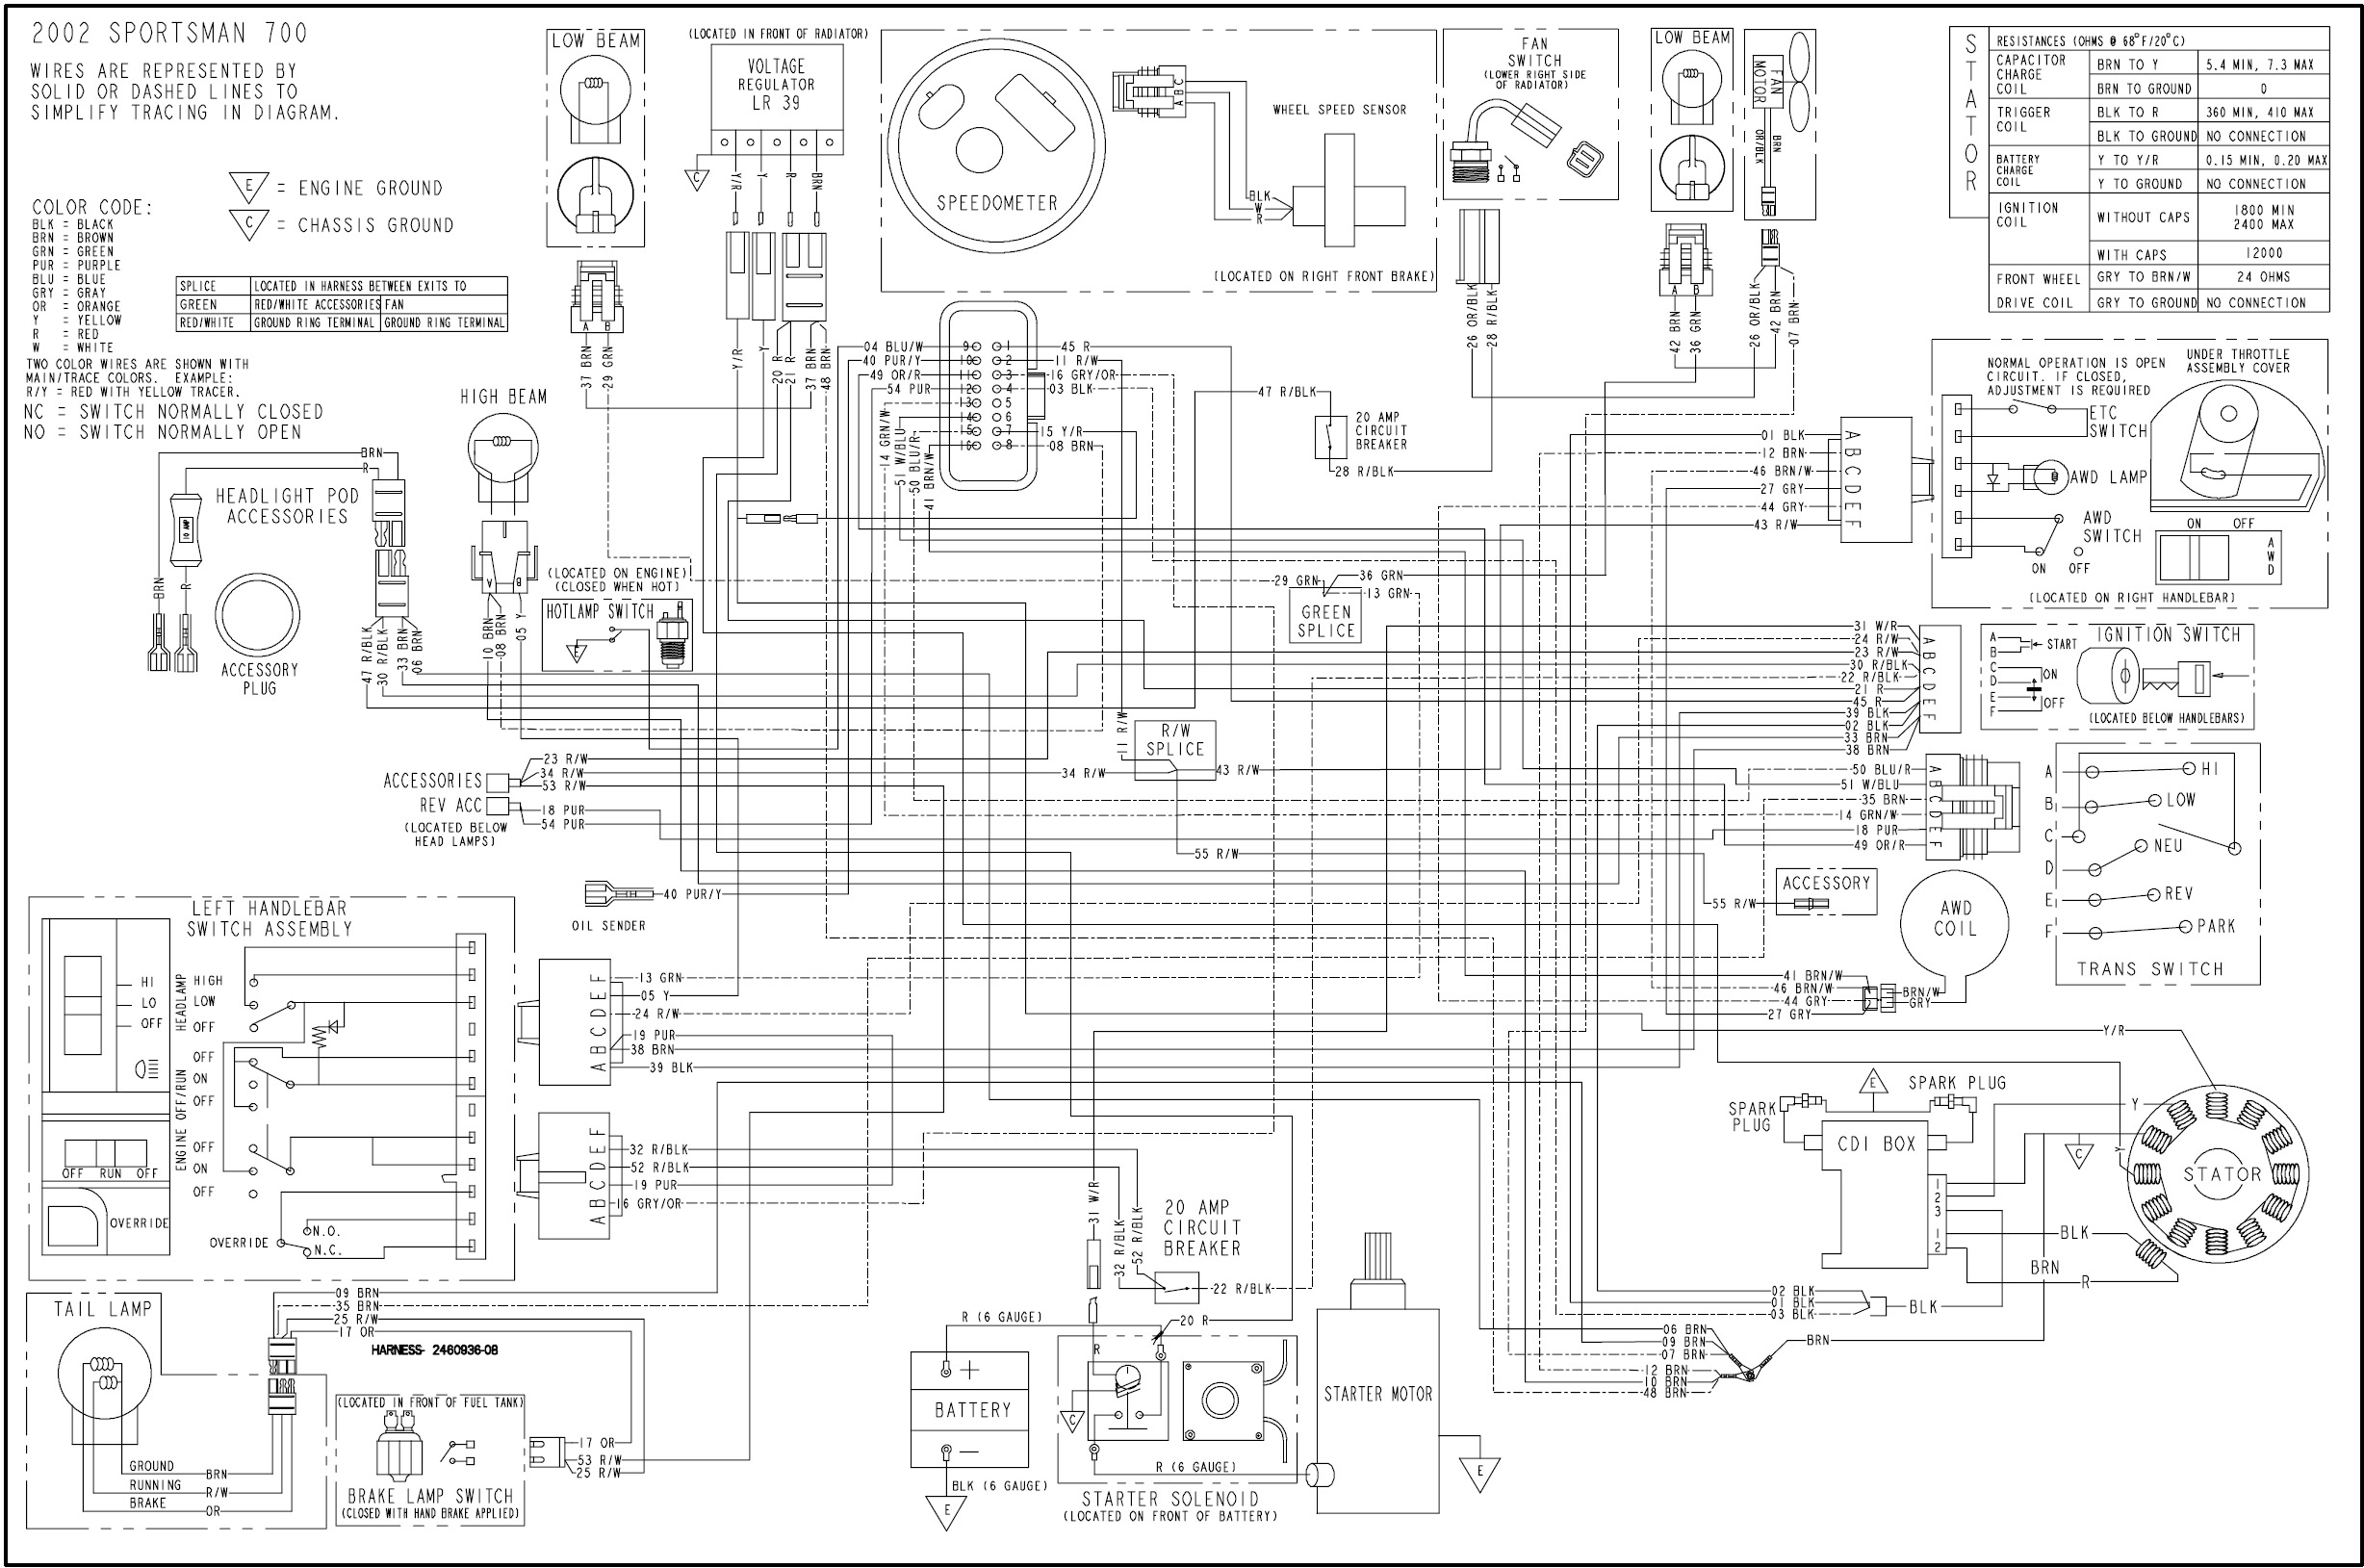 75754d1491234477 2001 sportsman 700 twin no start 2002_polaris_sportsman_700_wiring_diagram 2014 polaris outlaw 50 wiring diagram efcaviation com 2001 polaris 325 wiring diagram at readyjetset.co